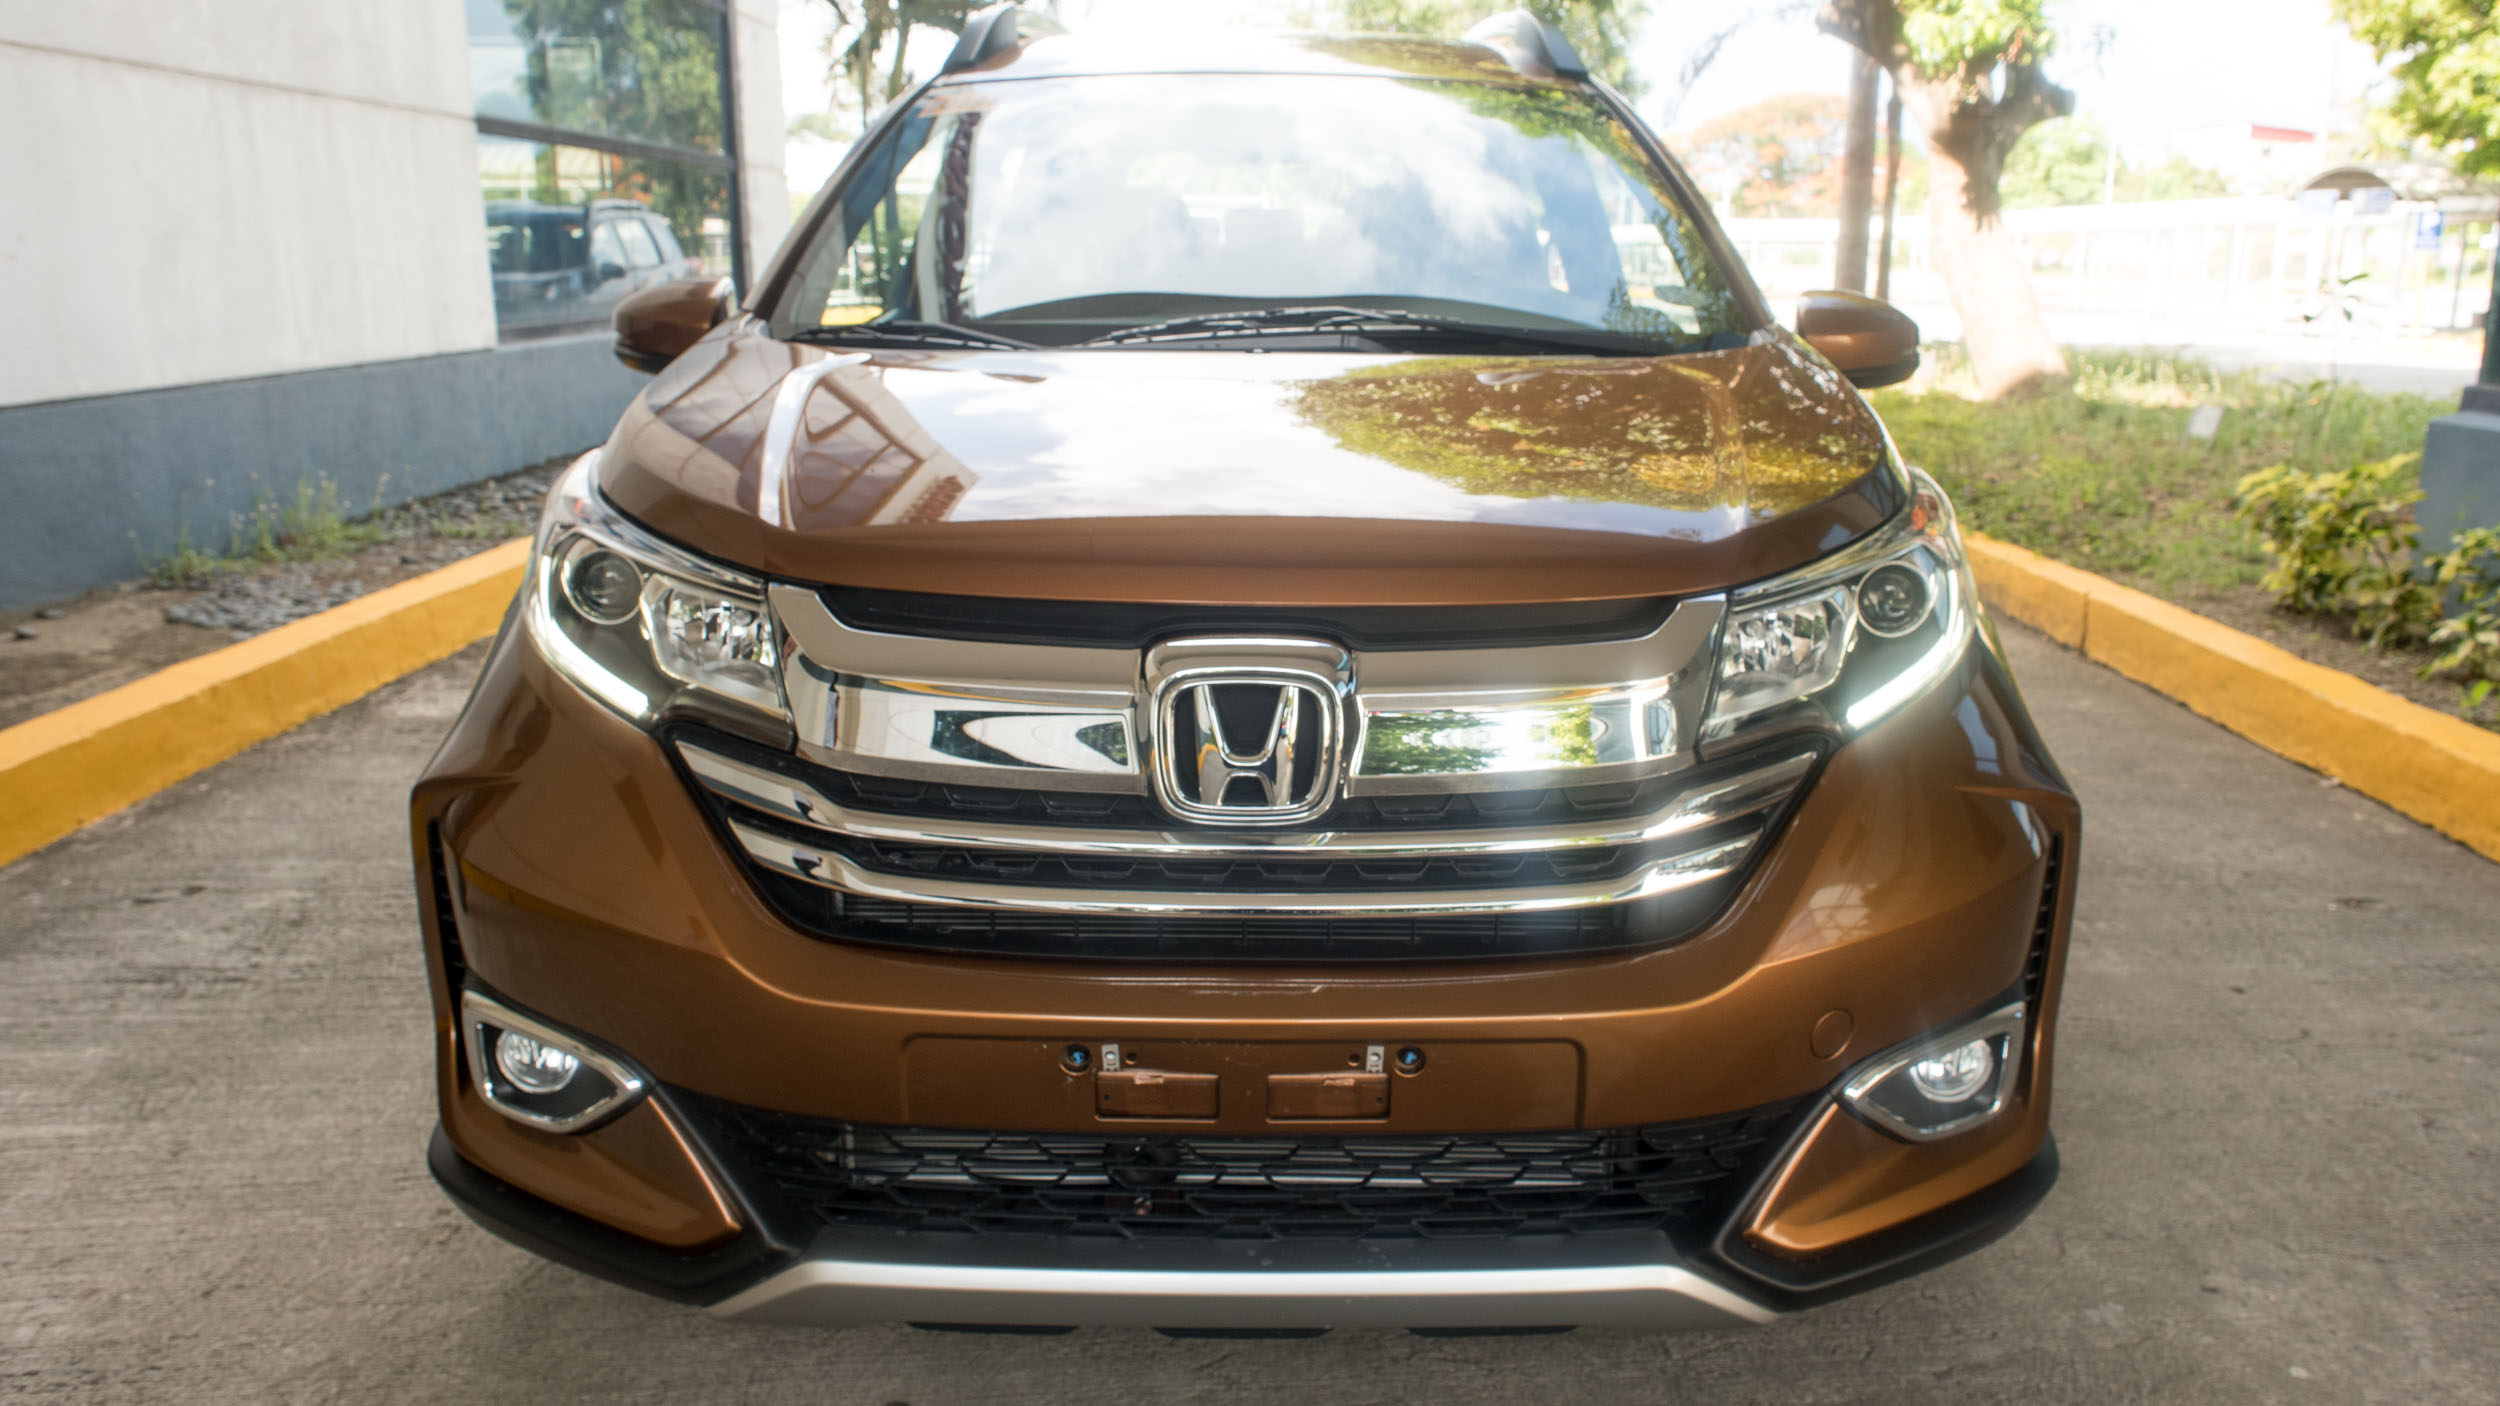 2019 Honda BR-V: Prices, specs, features